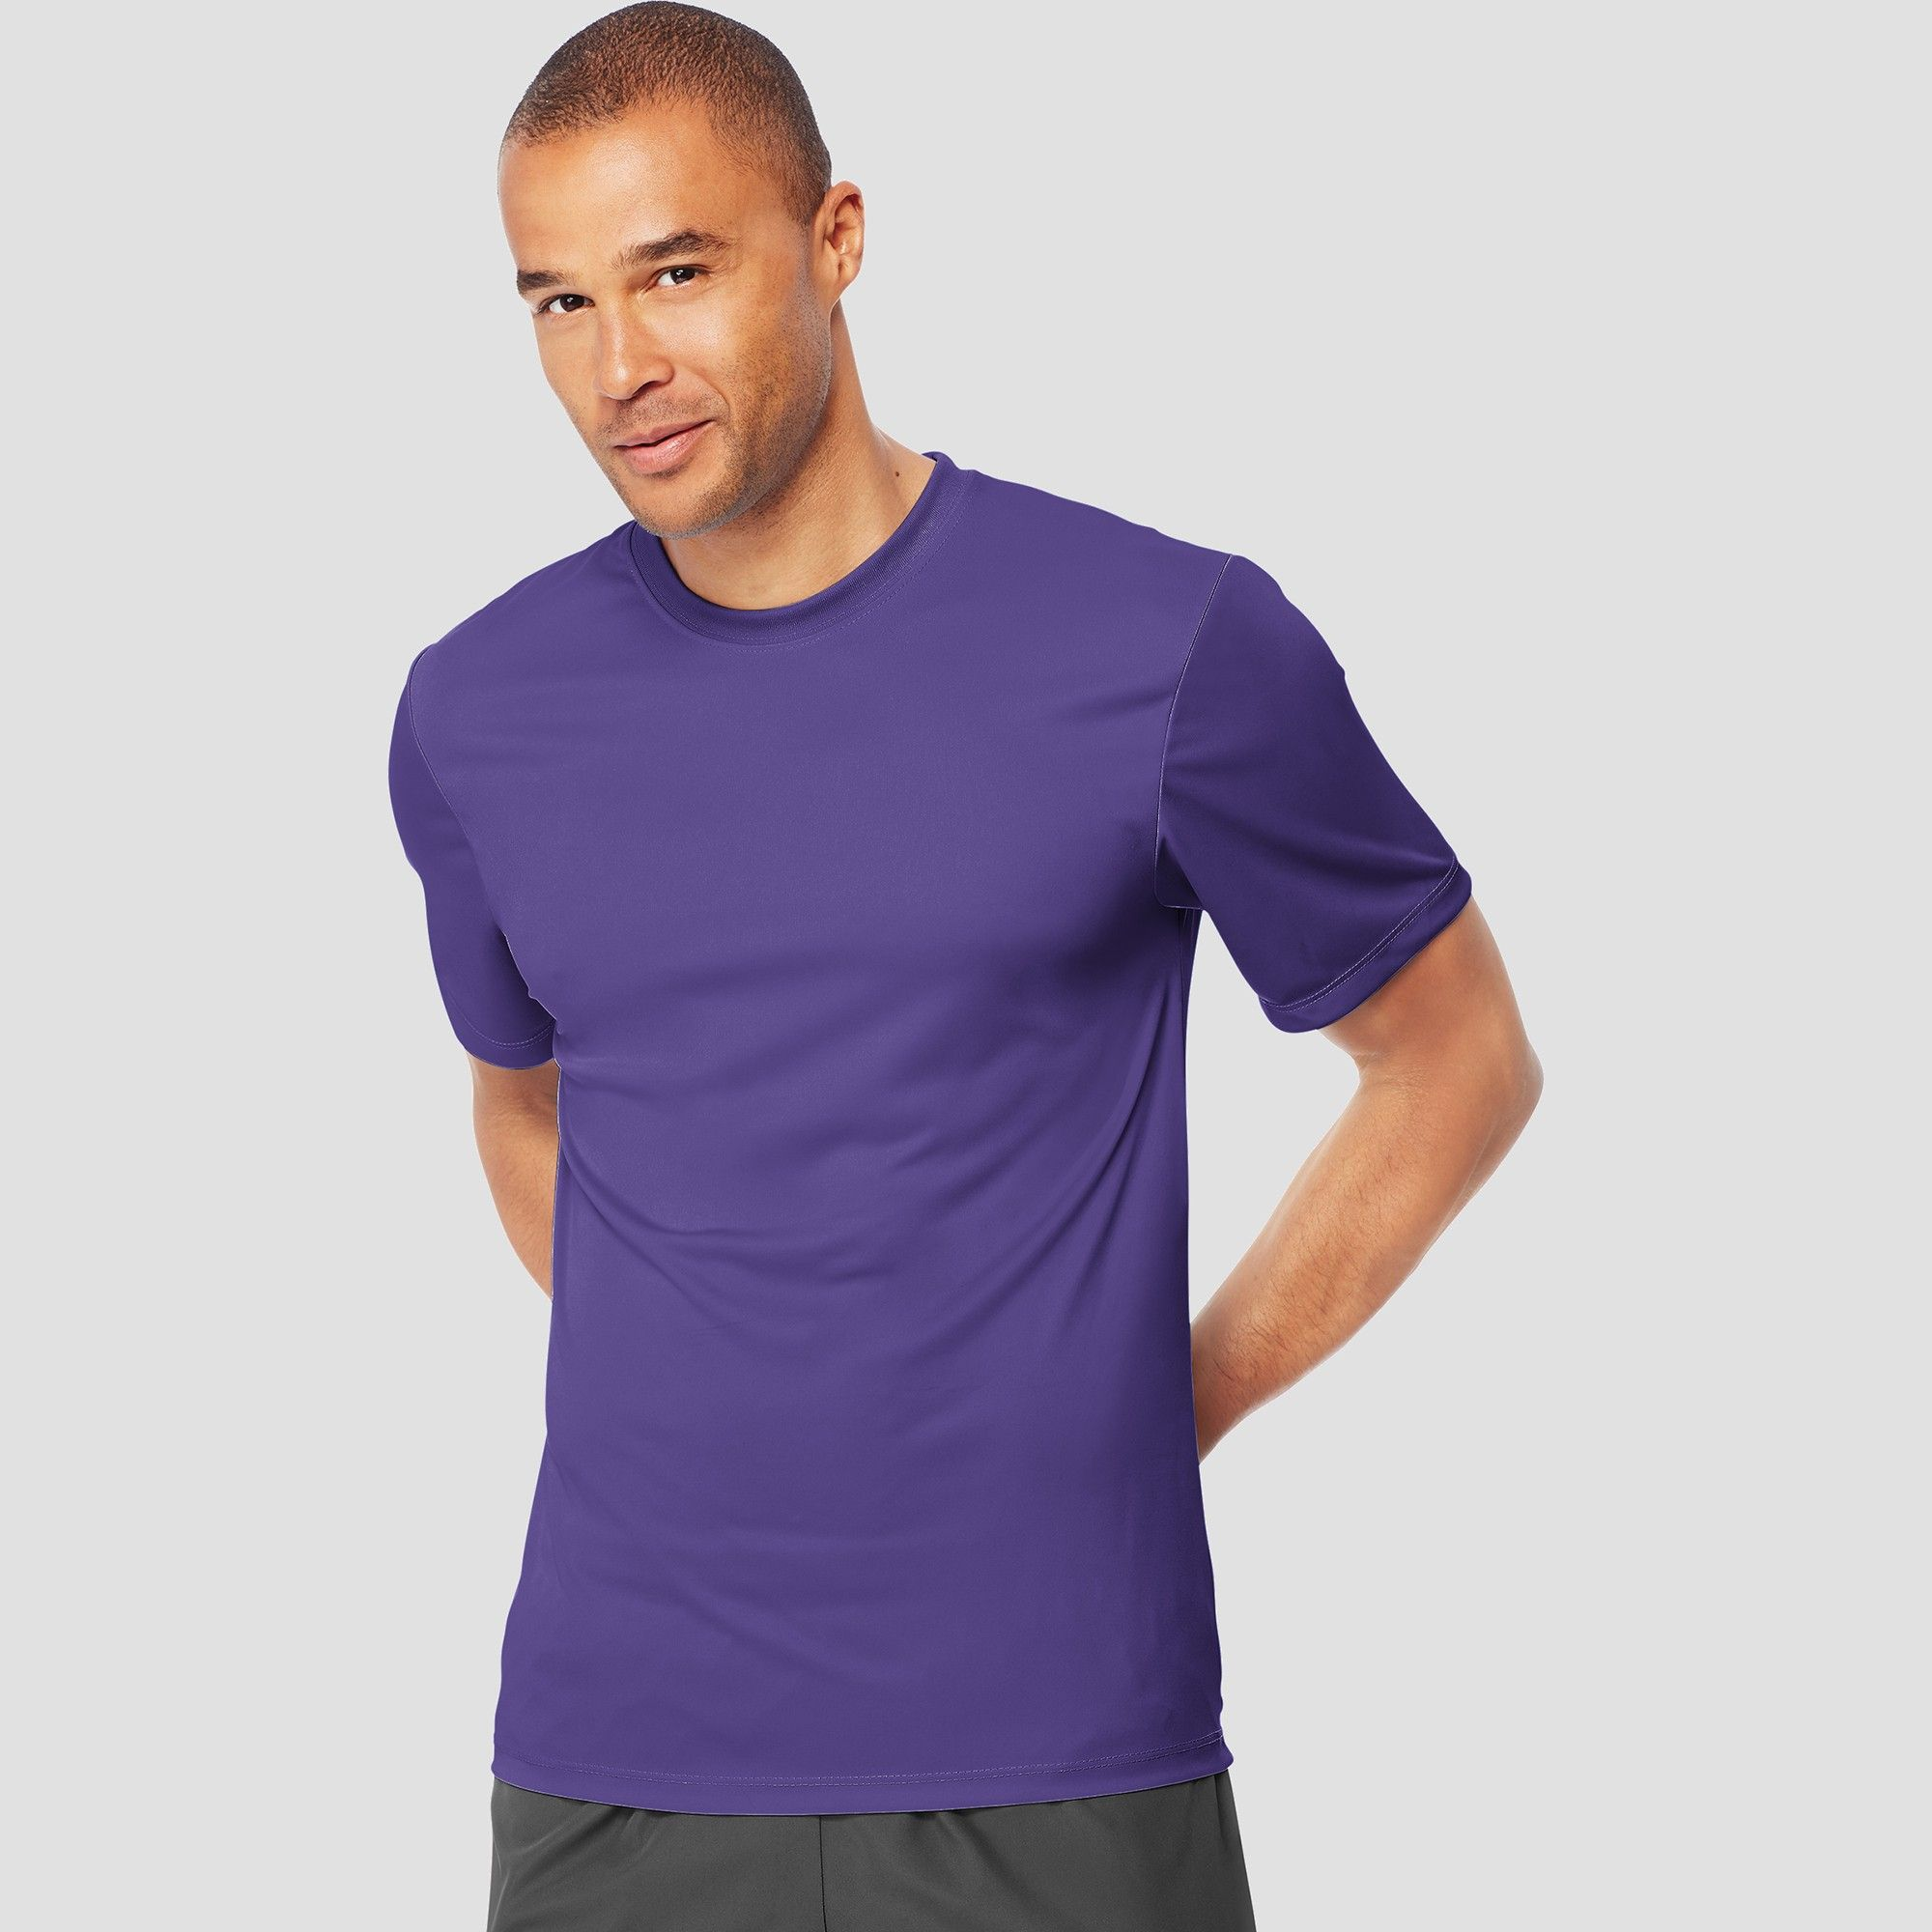 feafda249 Hanes Men s Short Sleeve CoolDRI Performance T-Shirt -Purple M ...